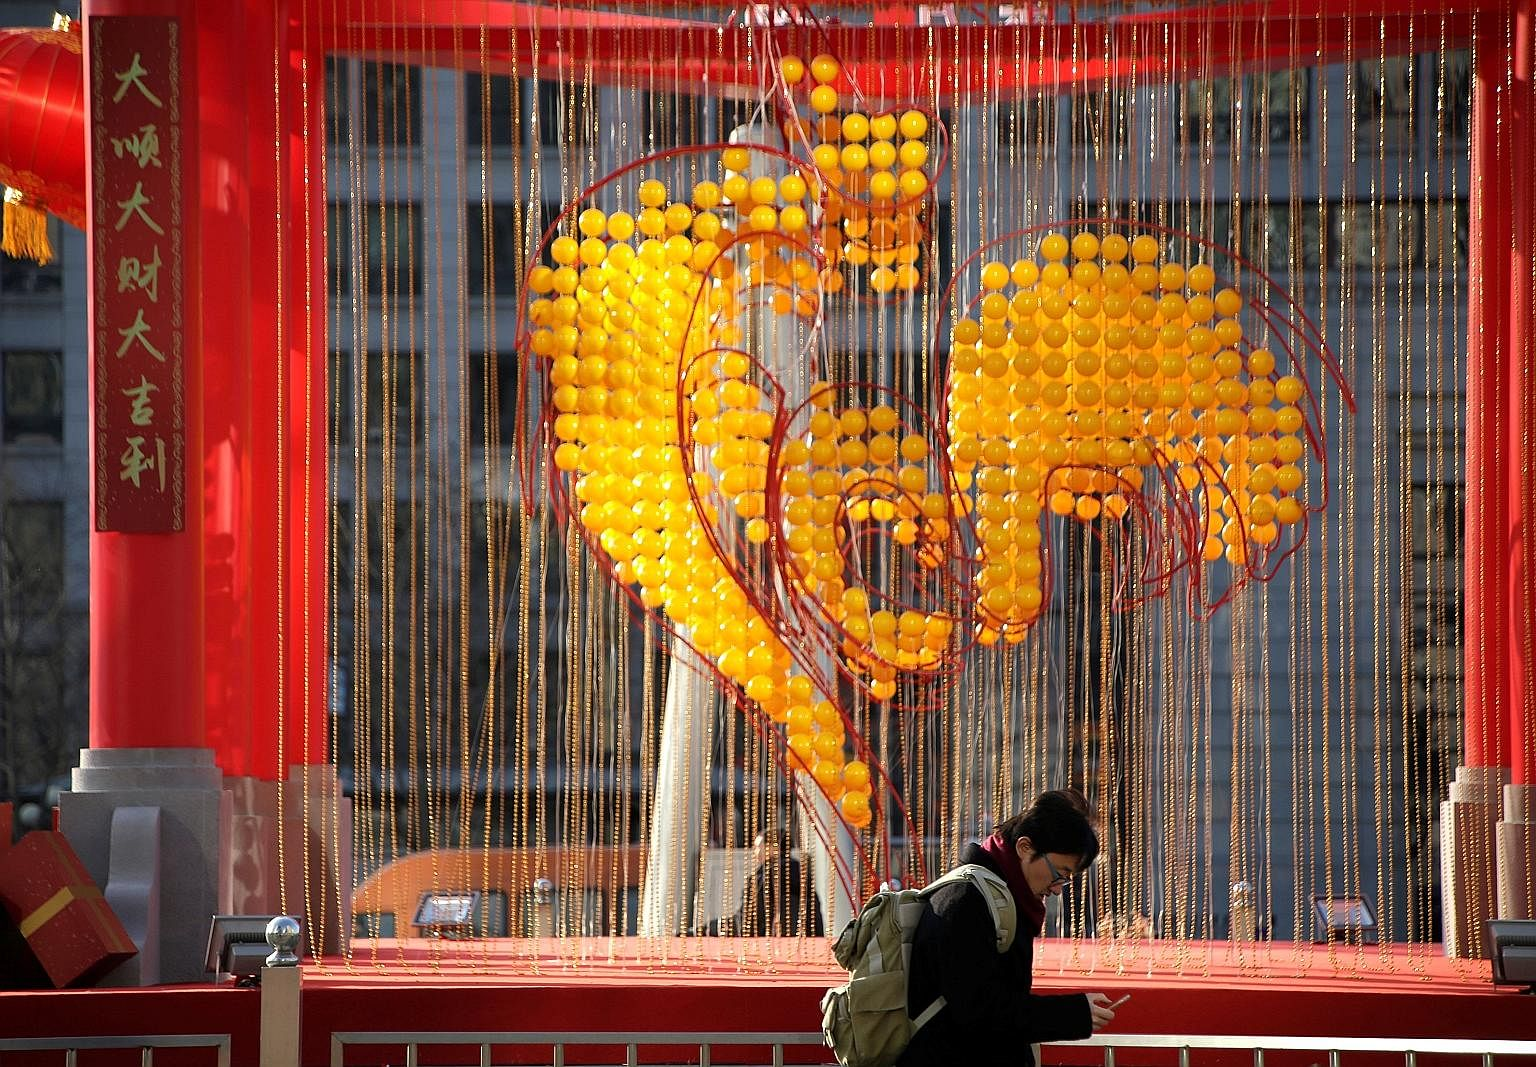 Decorations are up for the upcoming Year of the Rooster at the Oriental Plaza in Beijing. PO